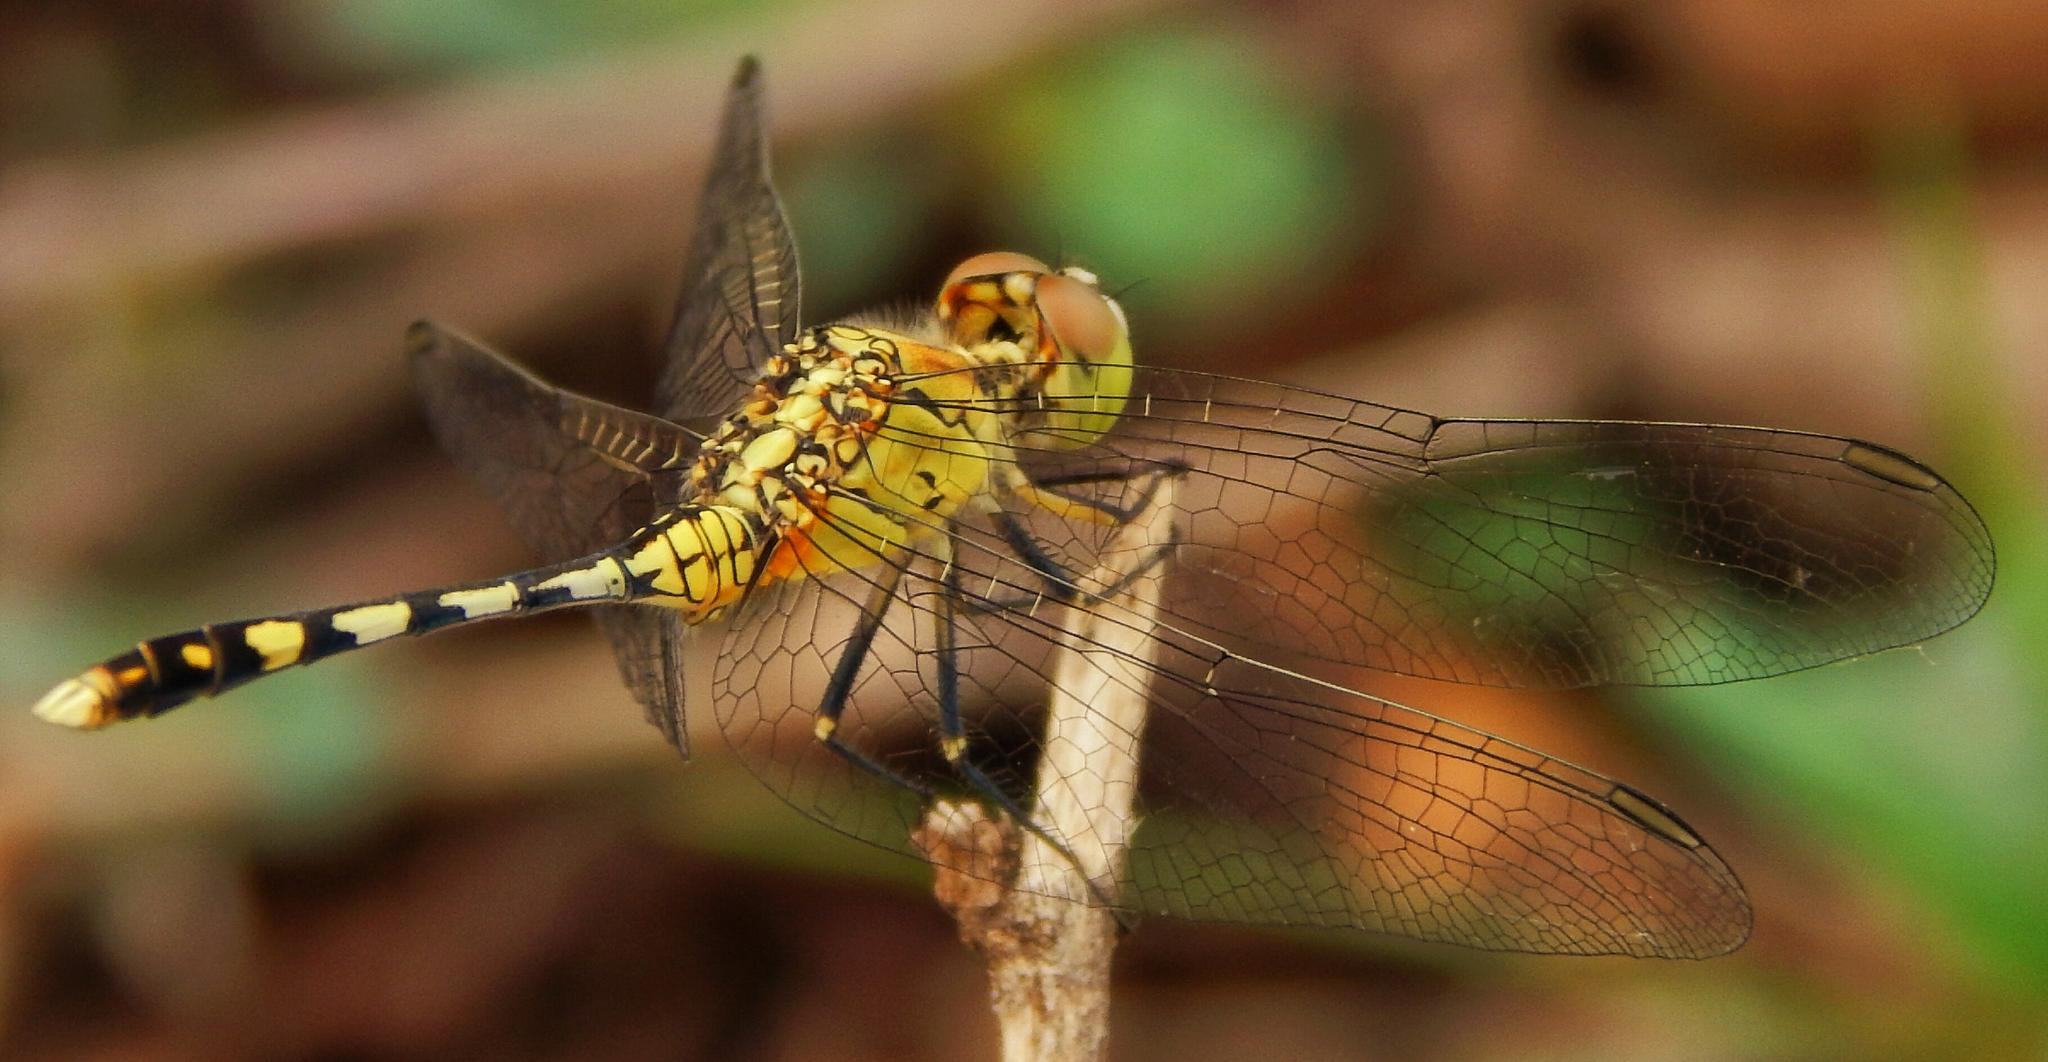 dragonfly 6 by Aritra ghosh